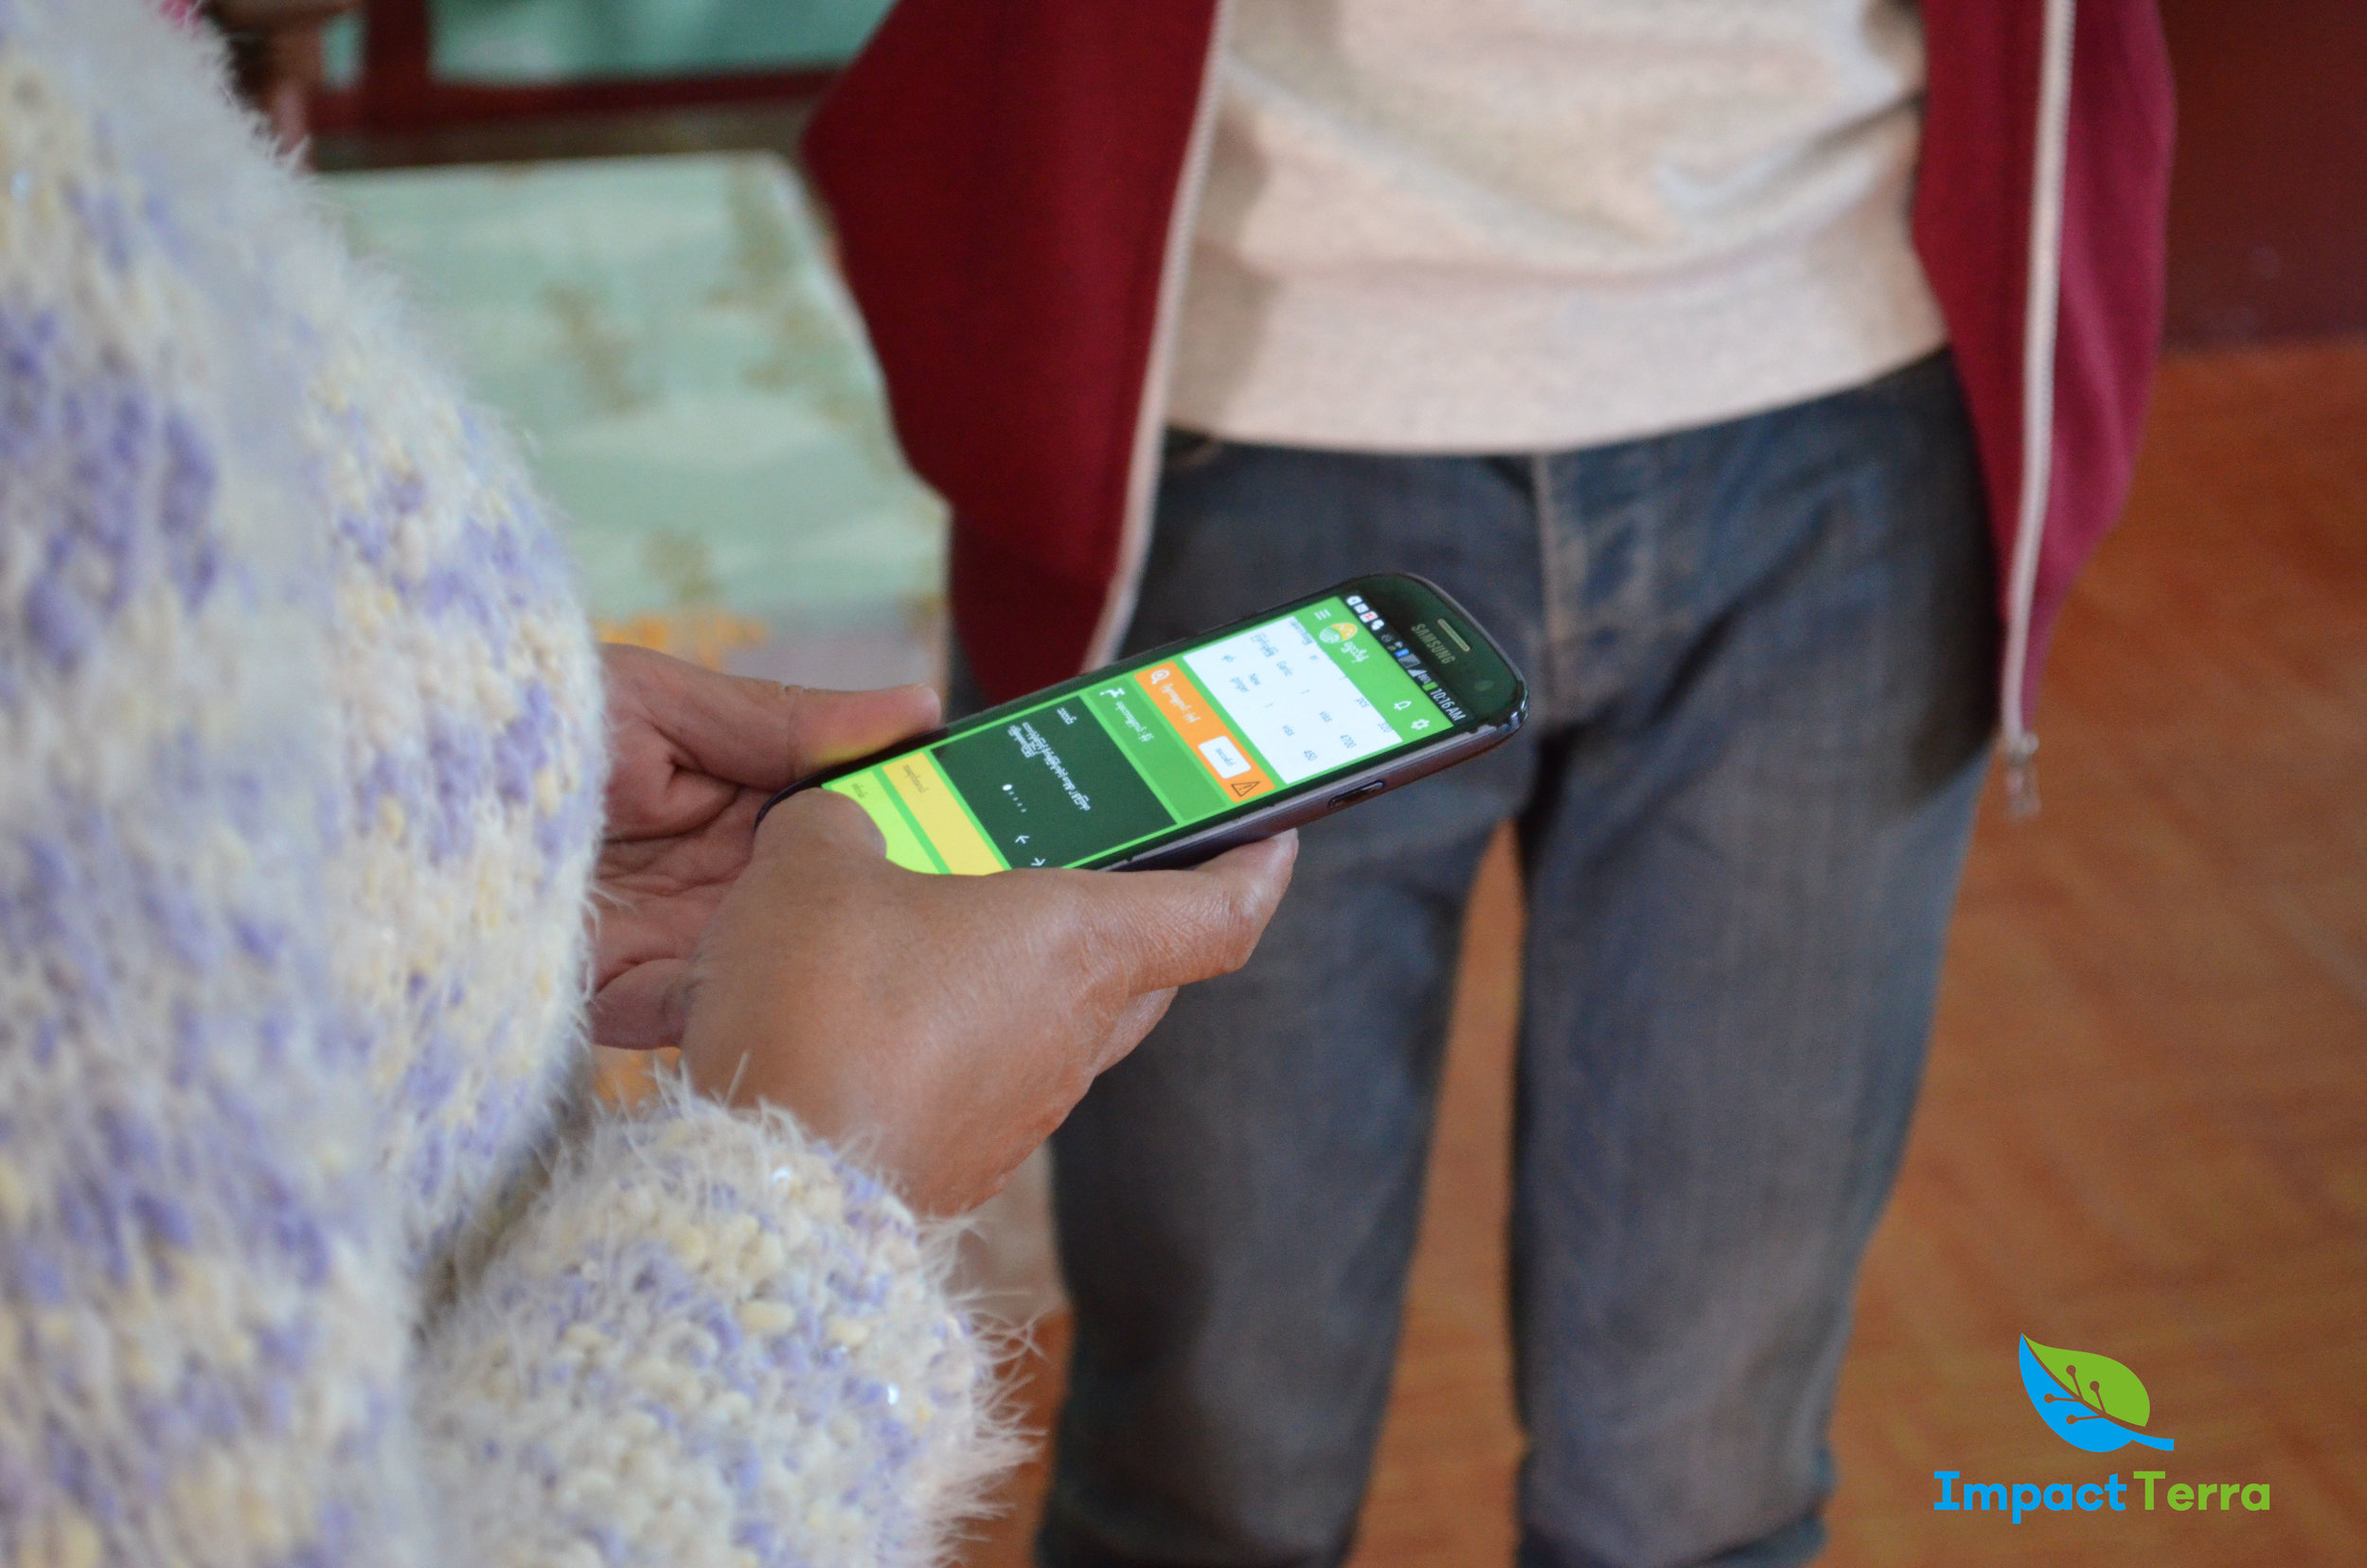 Communicate - Direct communication with smallholder farmers via different digital and offline channelsLearn more